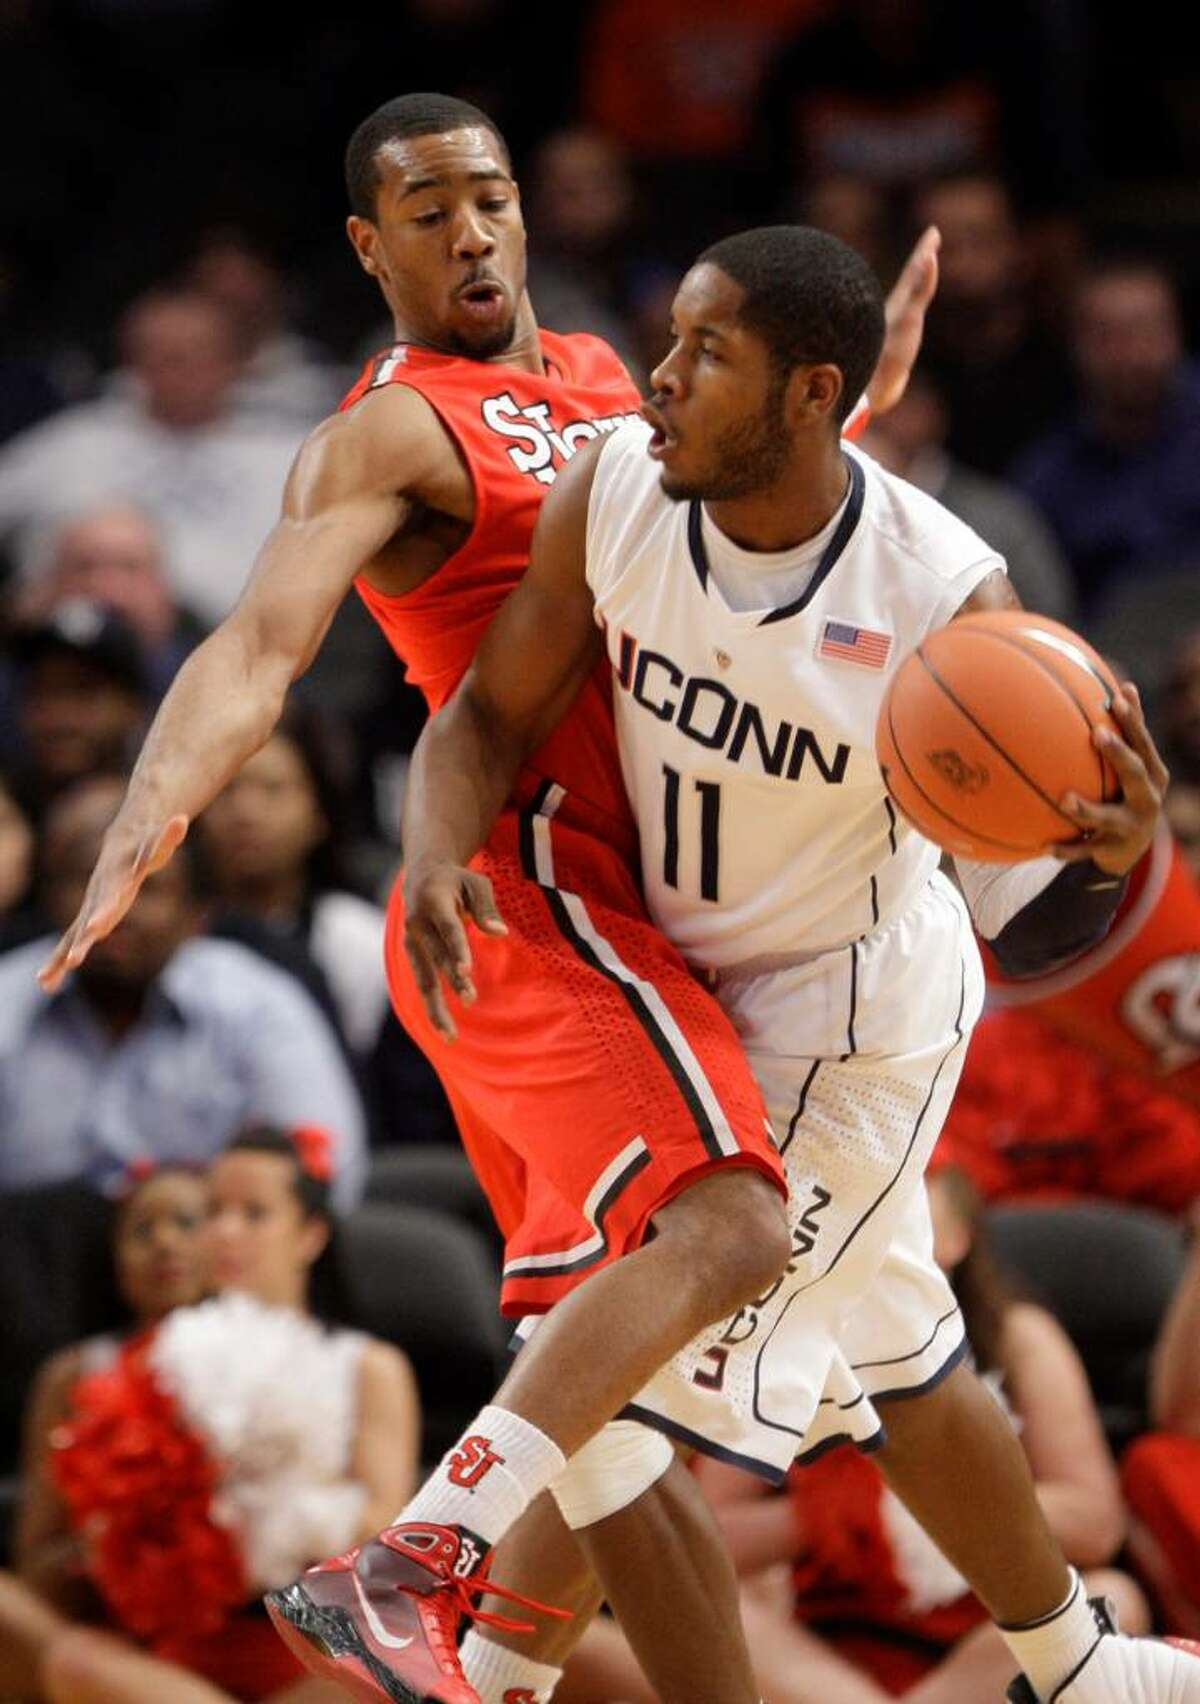 St. John's Paris Horne, left, defends against Connecticut's Jerome Dyson, right, during the first half of a first round NCAA college basketball game at the Big East Conference Championships on Tuesday, March 9, 2010 in New York. (AP Photo/Frank Franklin II)